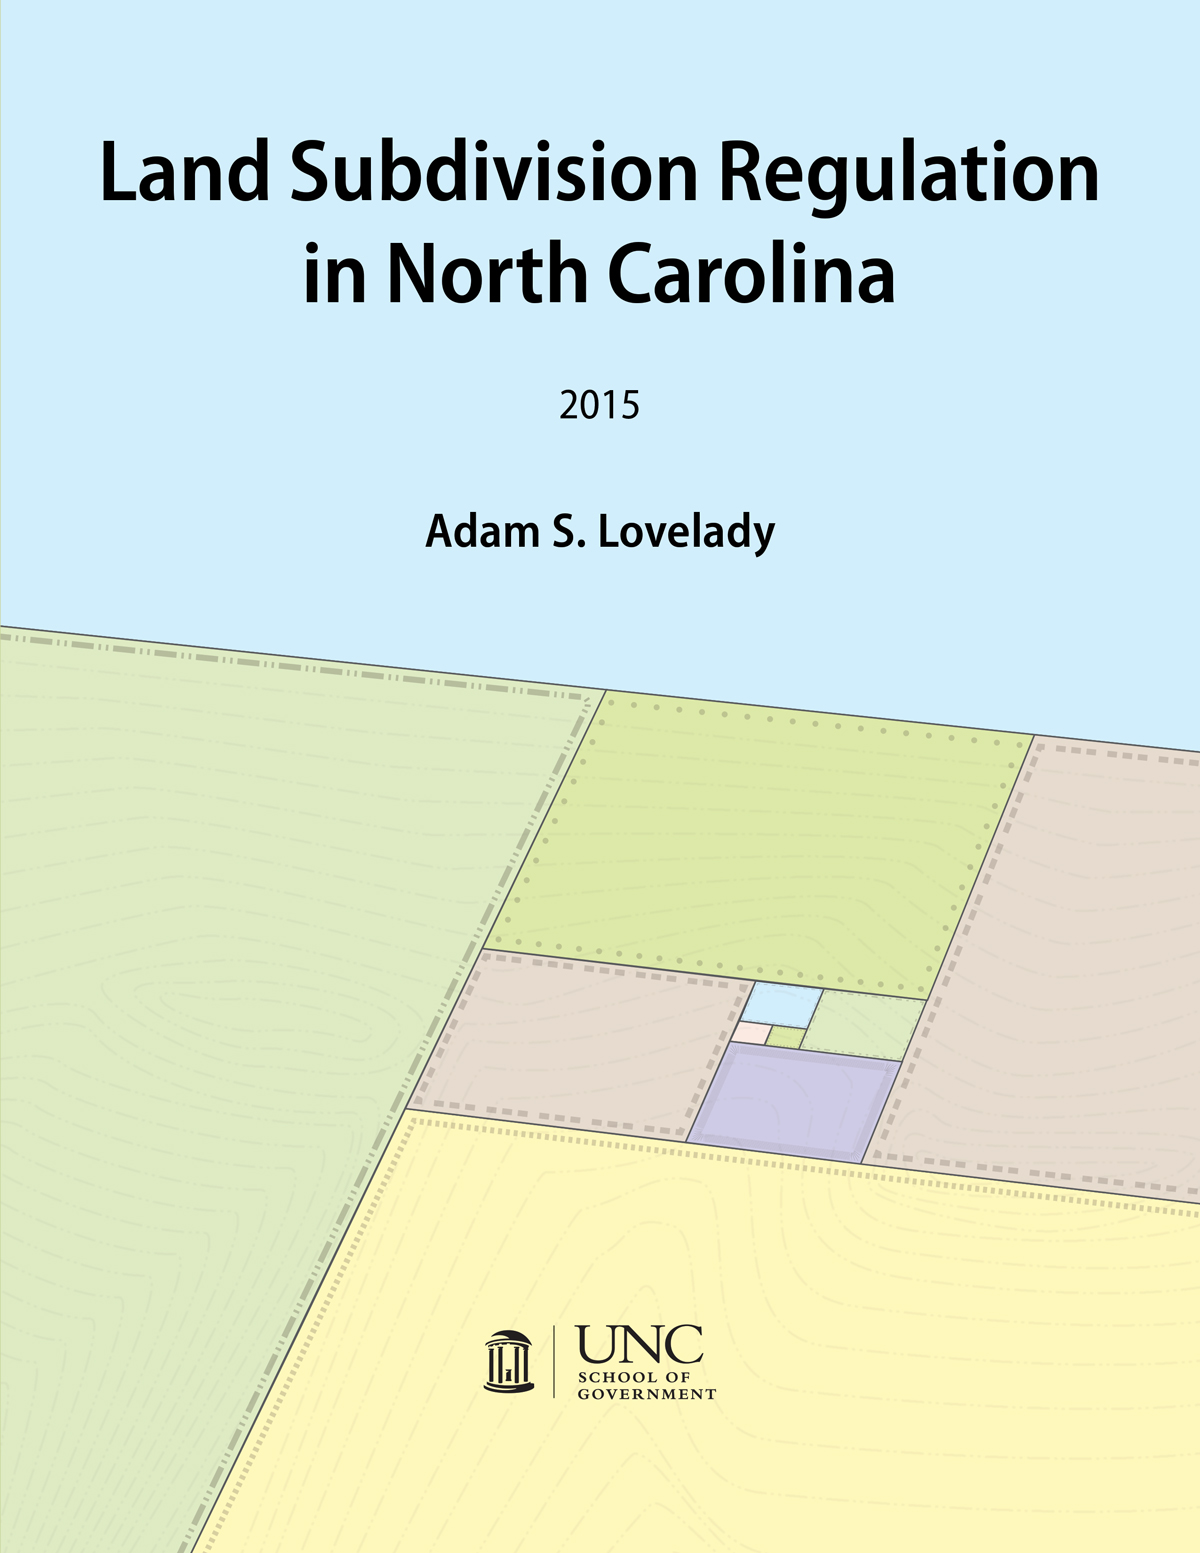 Land Subdivision Regulation in North Carolina